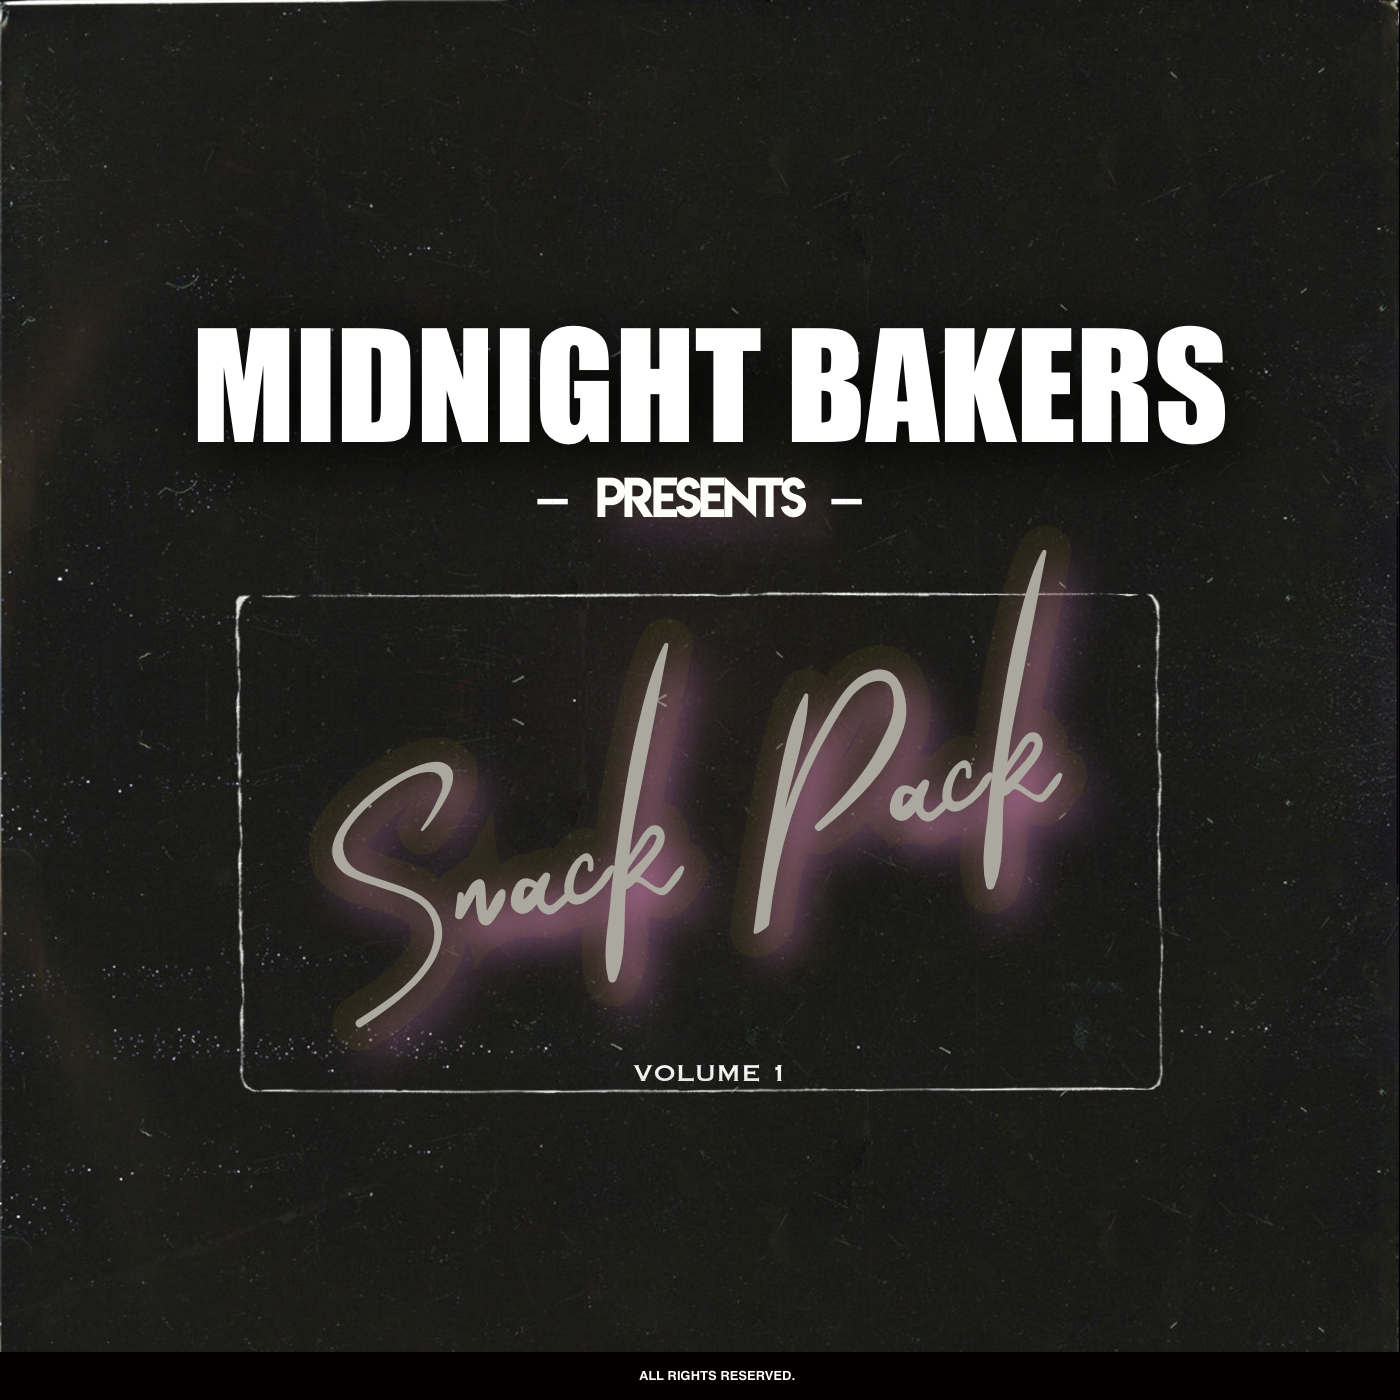 MIDNIGHT BAKERS — Snack Pack (Vol. 1) - SAMPLE LOOP PACK